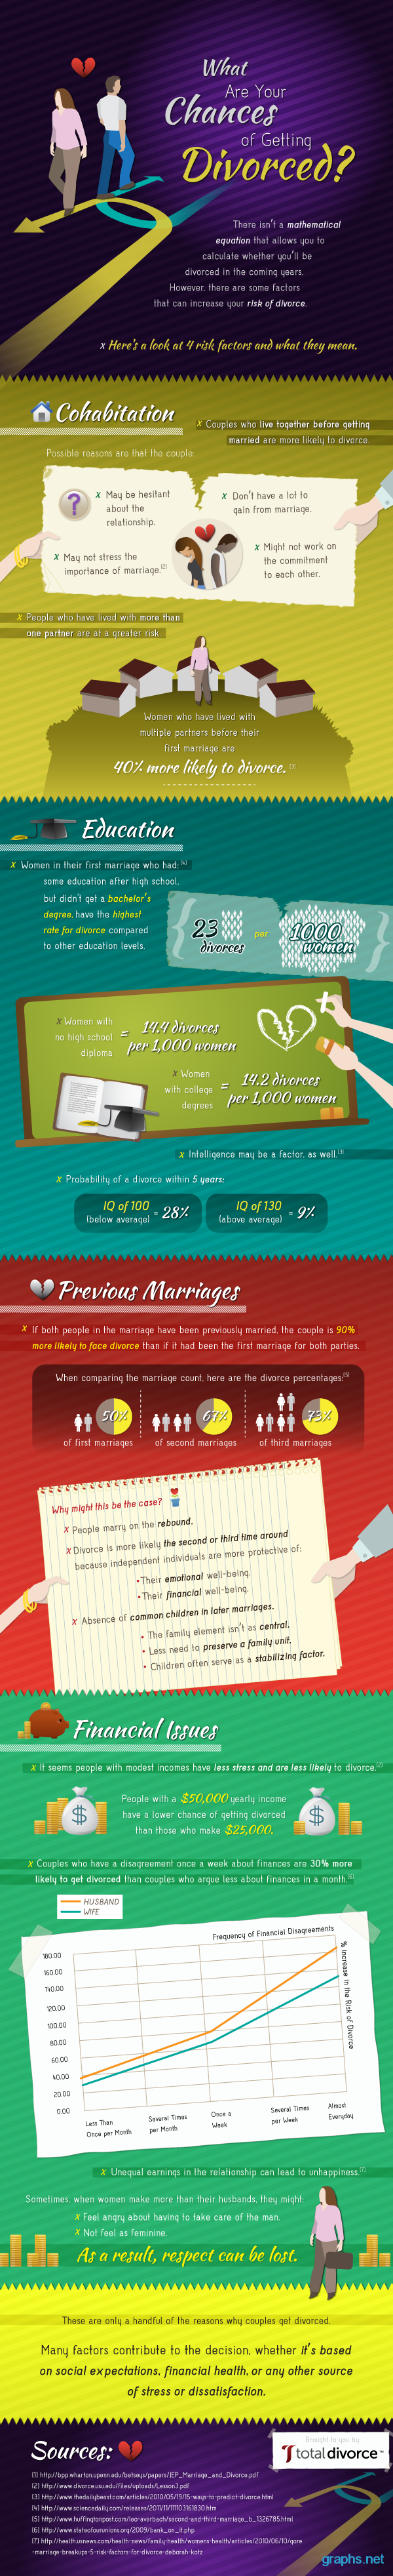 Calculate Your Chances Getting Divorced